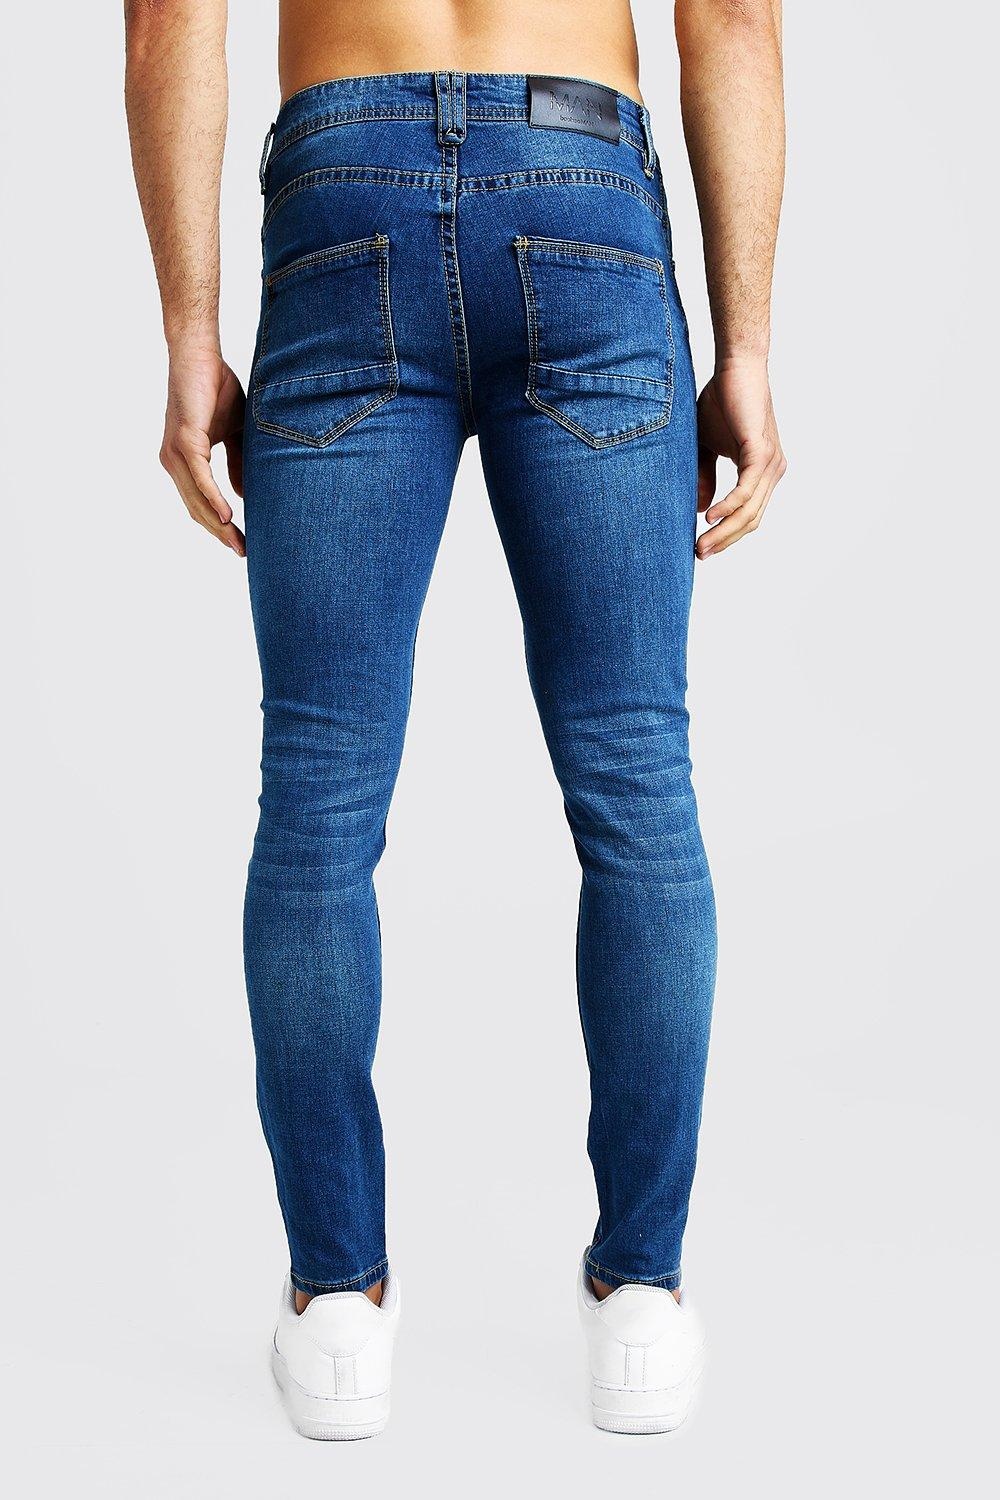 Skinny Fit Denim Fit blue Jeans Skinny Denim PrCwrq